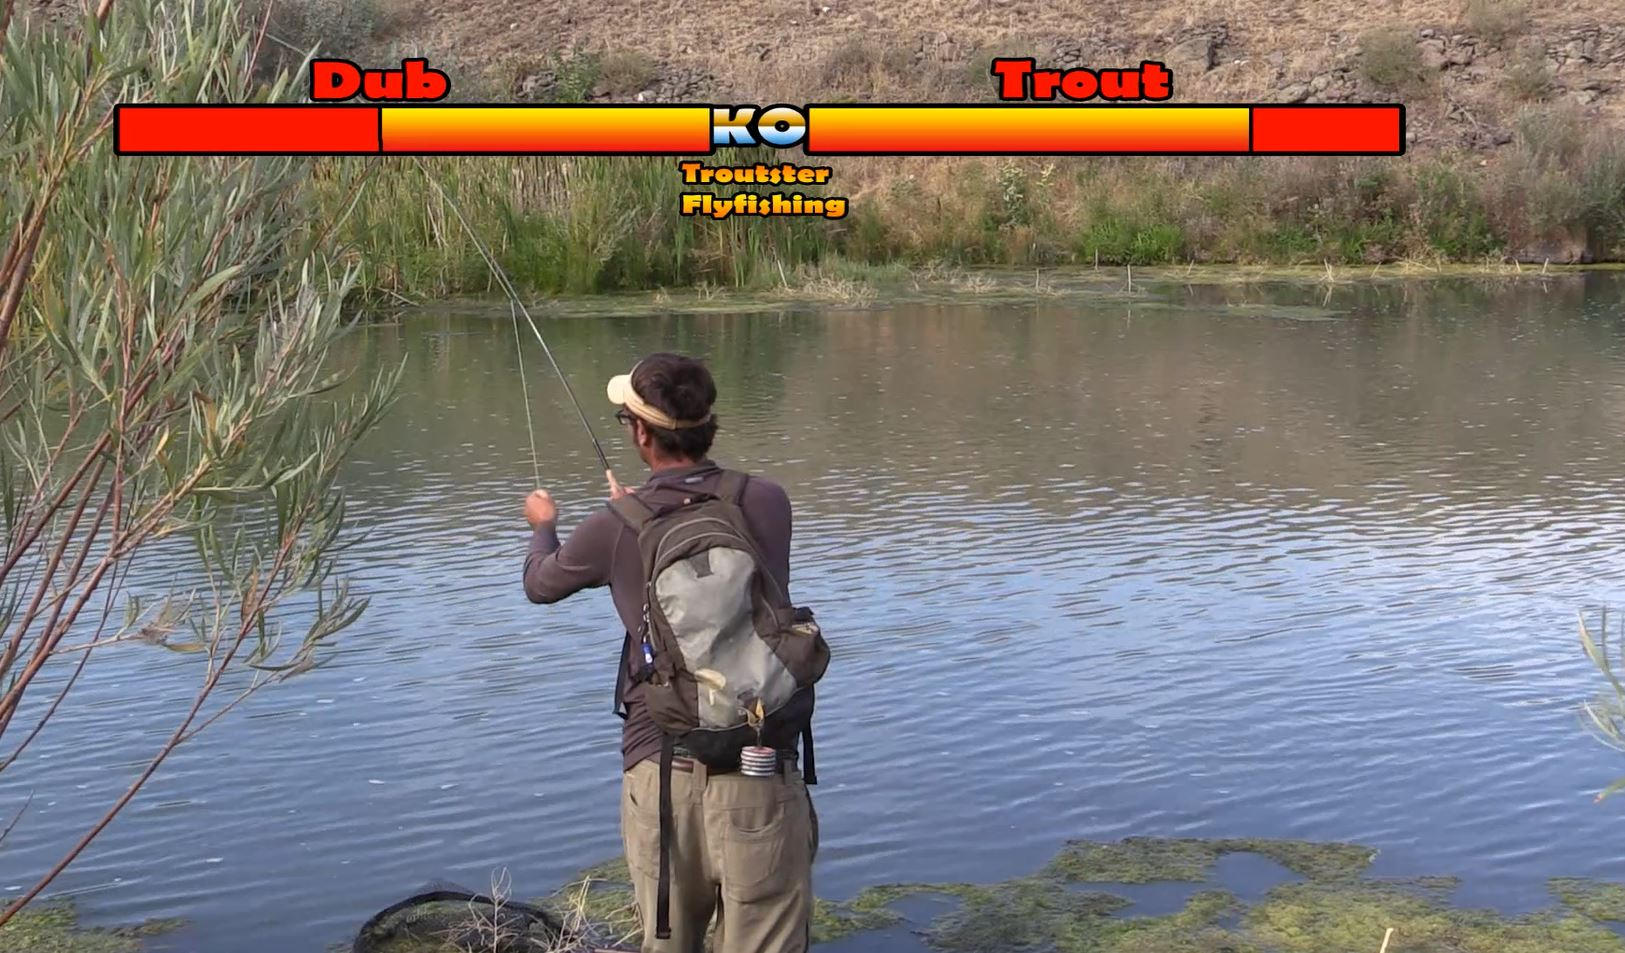 Fighting a brown trout - Video game style